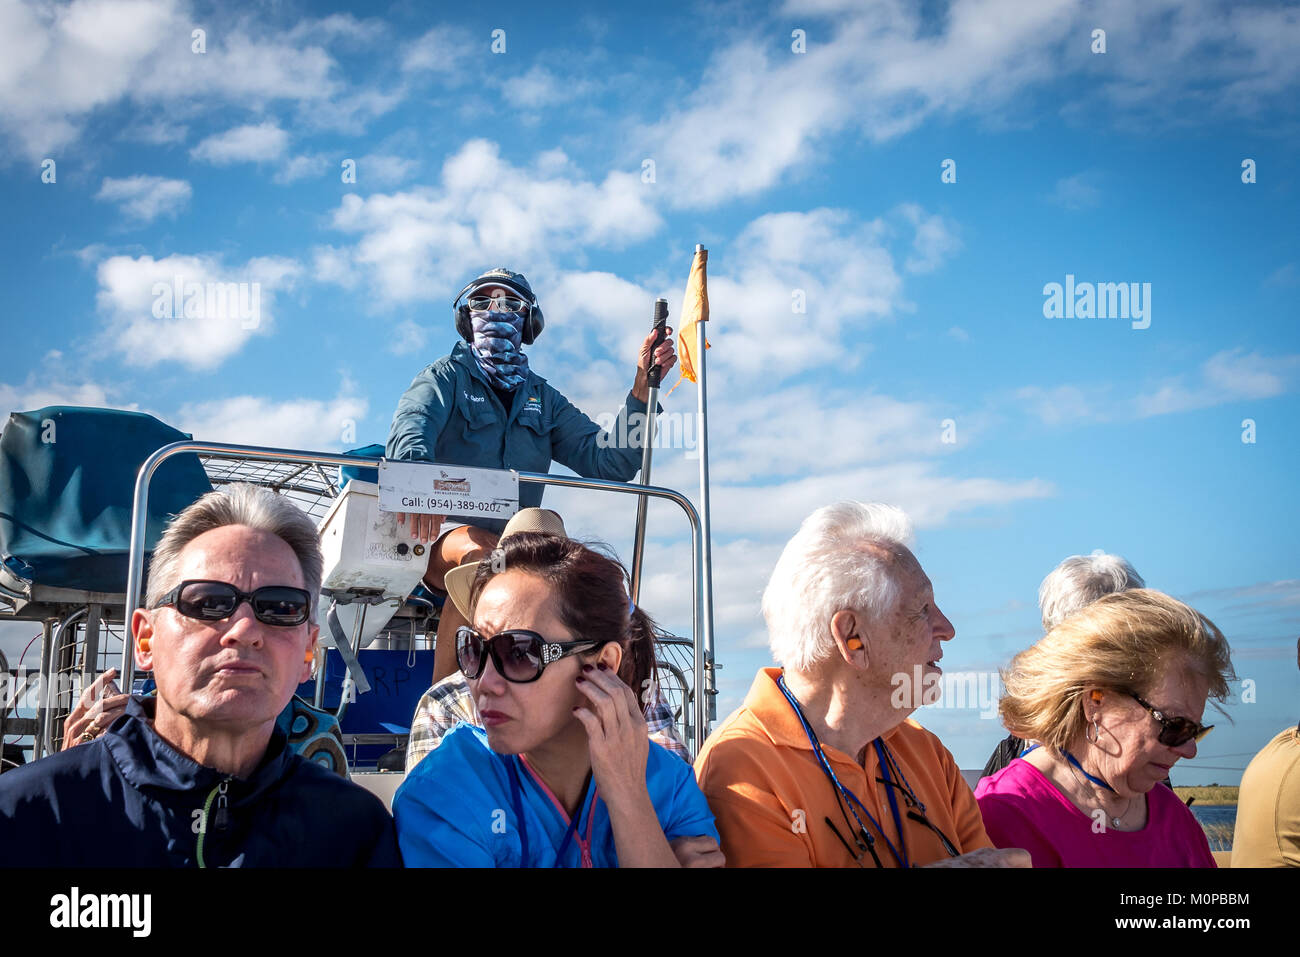 Tourists and captain on airboat in Florida Everglades at Sawgrass Recreation Park (also air boat), looking up captain - Stock Image